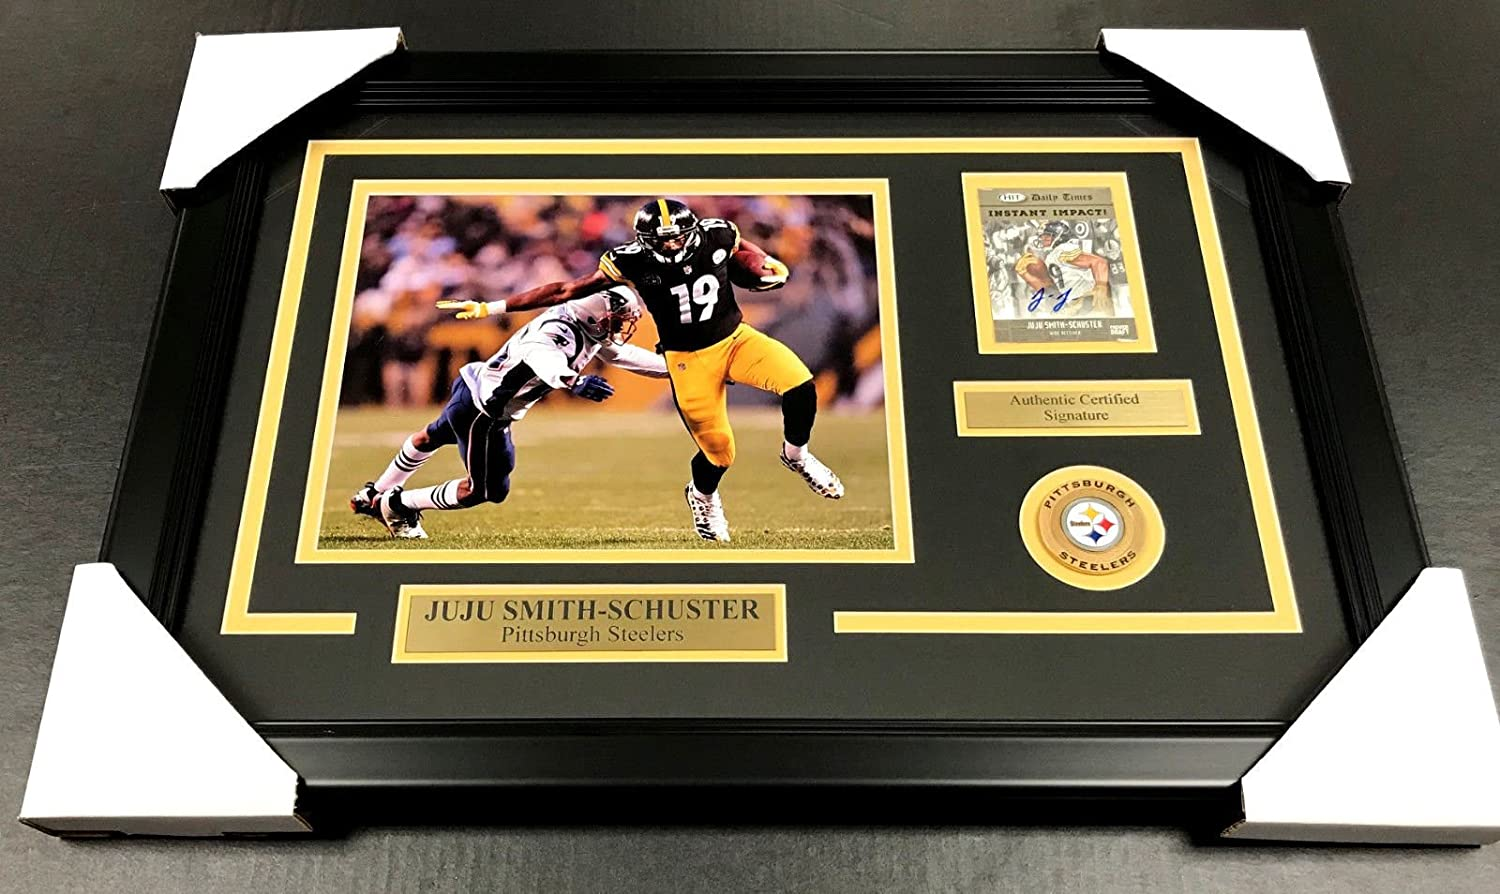 6b703423b6d JUJU SMITH SCHUSTER AUTOGRAPHED CARD AUTO FRAMED 8X10 PHOTO PITTSBURGH  STEELERS at Amazon s Sports Collectibles Store